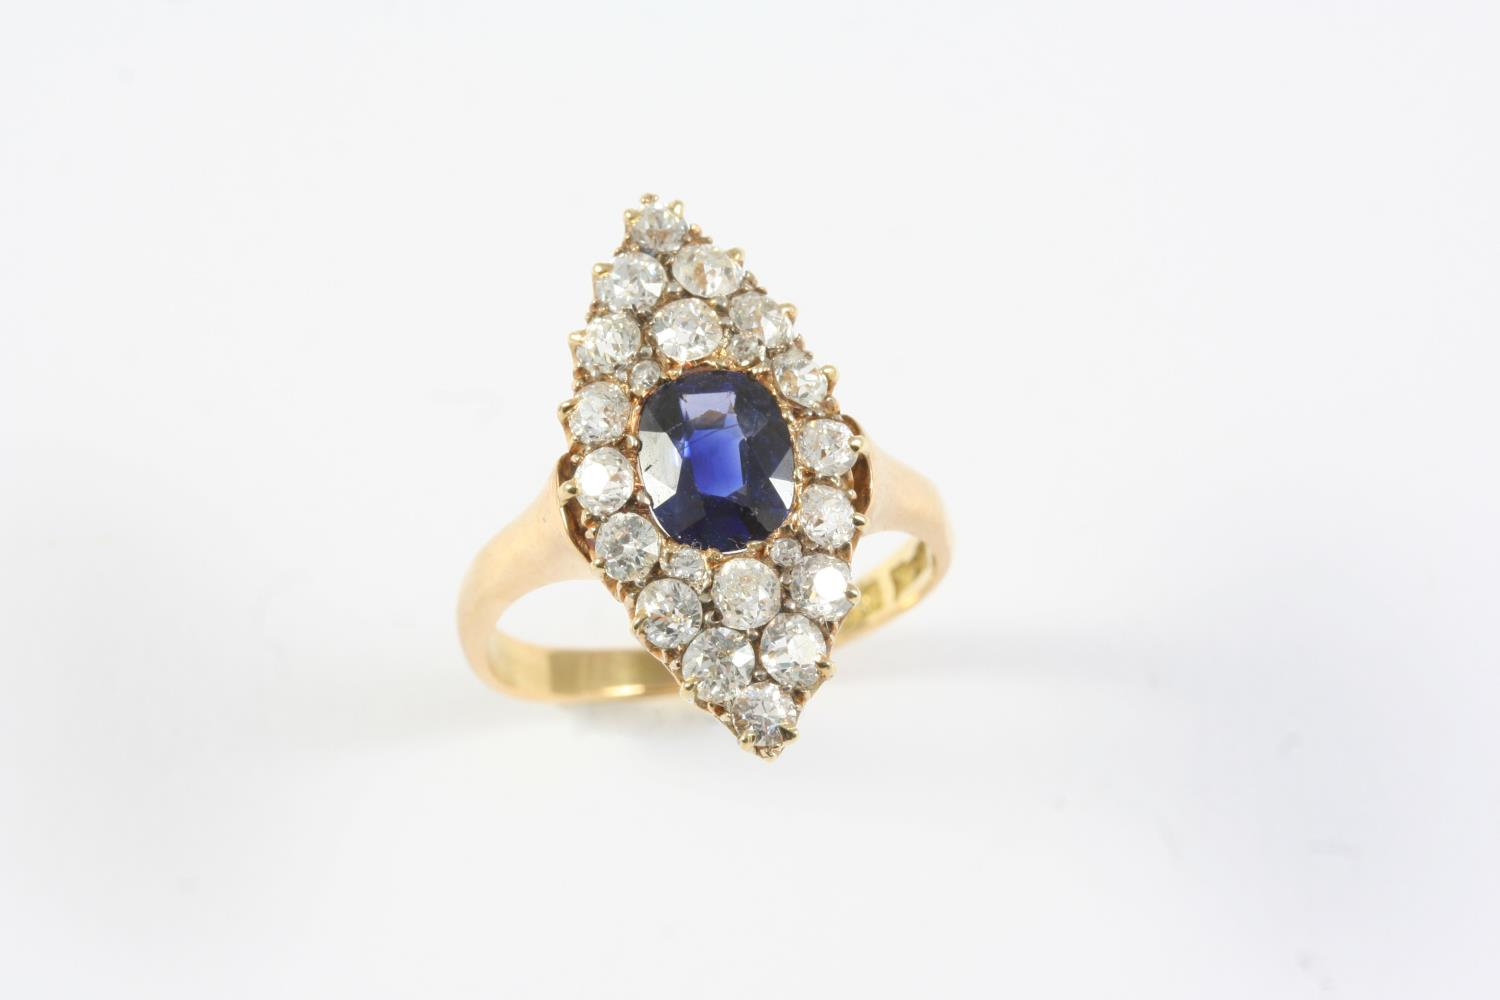 A SAPPHIRE AND DIAMOND MARQUISE-SHAPED CLUSTER RING the oval-shaped sapphire is set within a